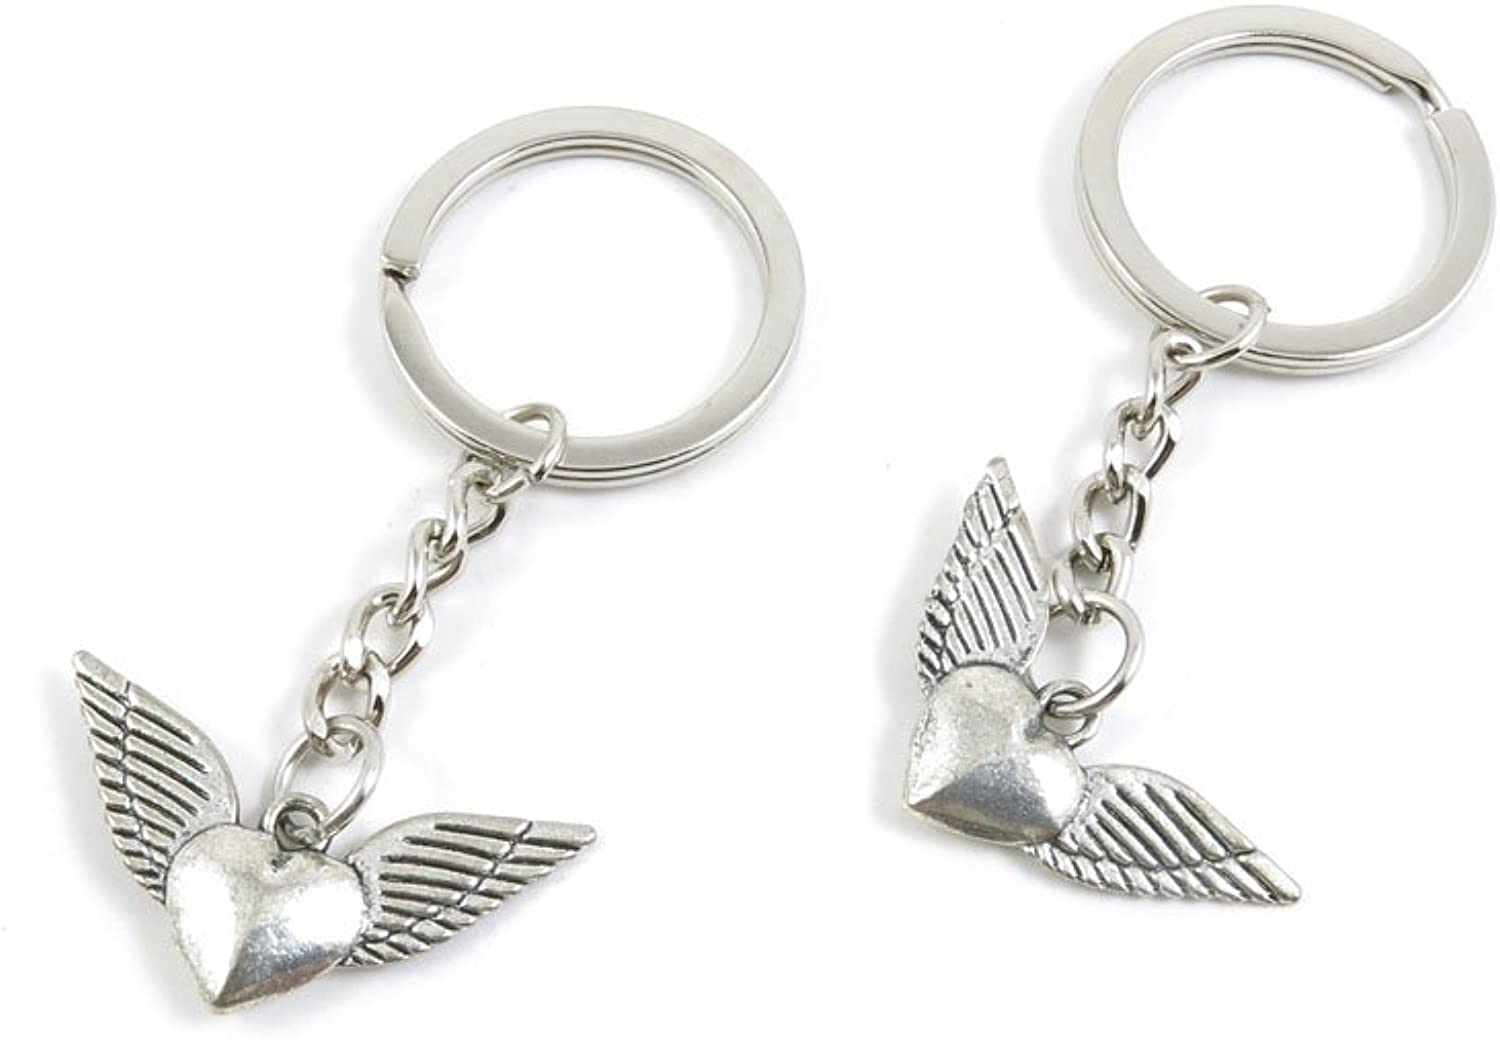 170 Pieces Fashion Jewelry Keyring Keychain Door Car Key Tag Ring Chain Supplier Supply Wholesale Bulk Lots C1SI3 Wings Heart